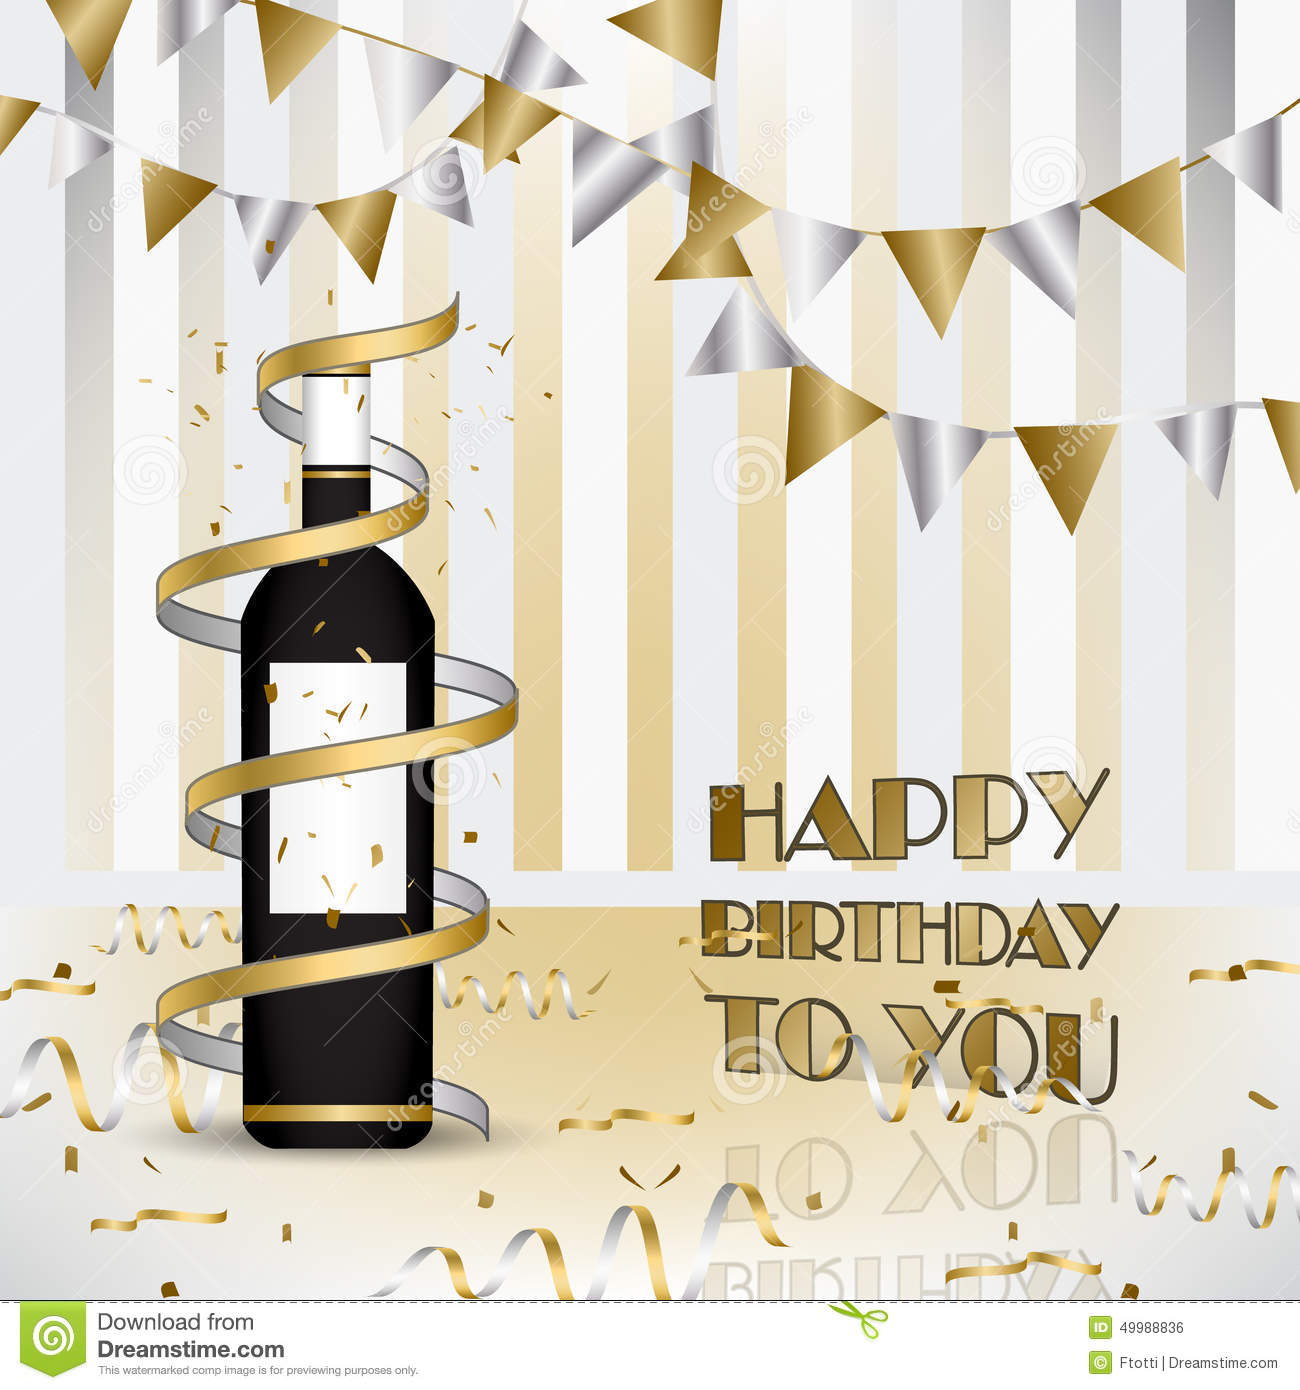 Happy Birthday Background With Bottle Of Wine And Ribbons Illustration Design For Your Wishes